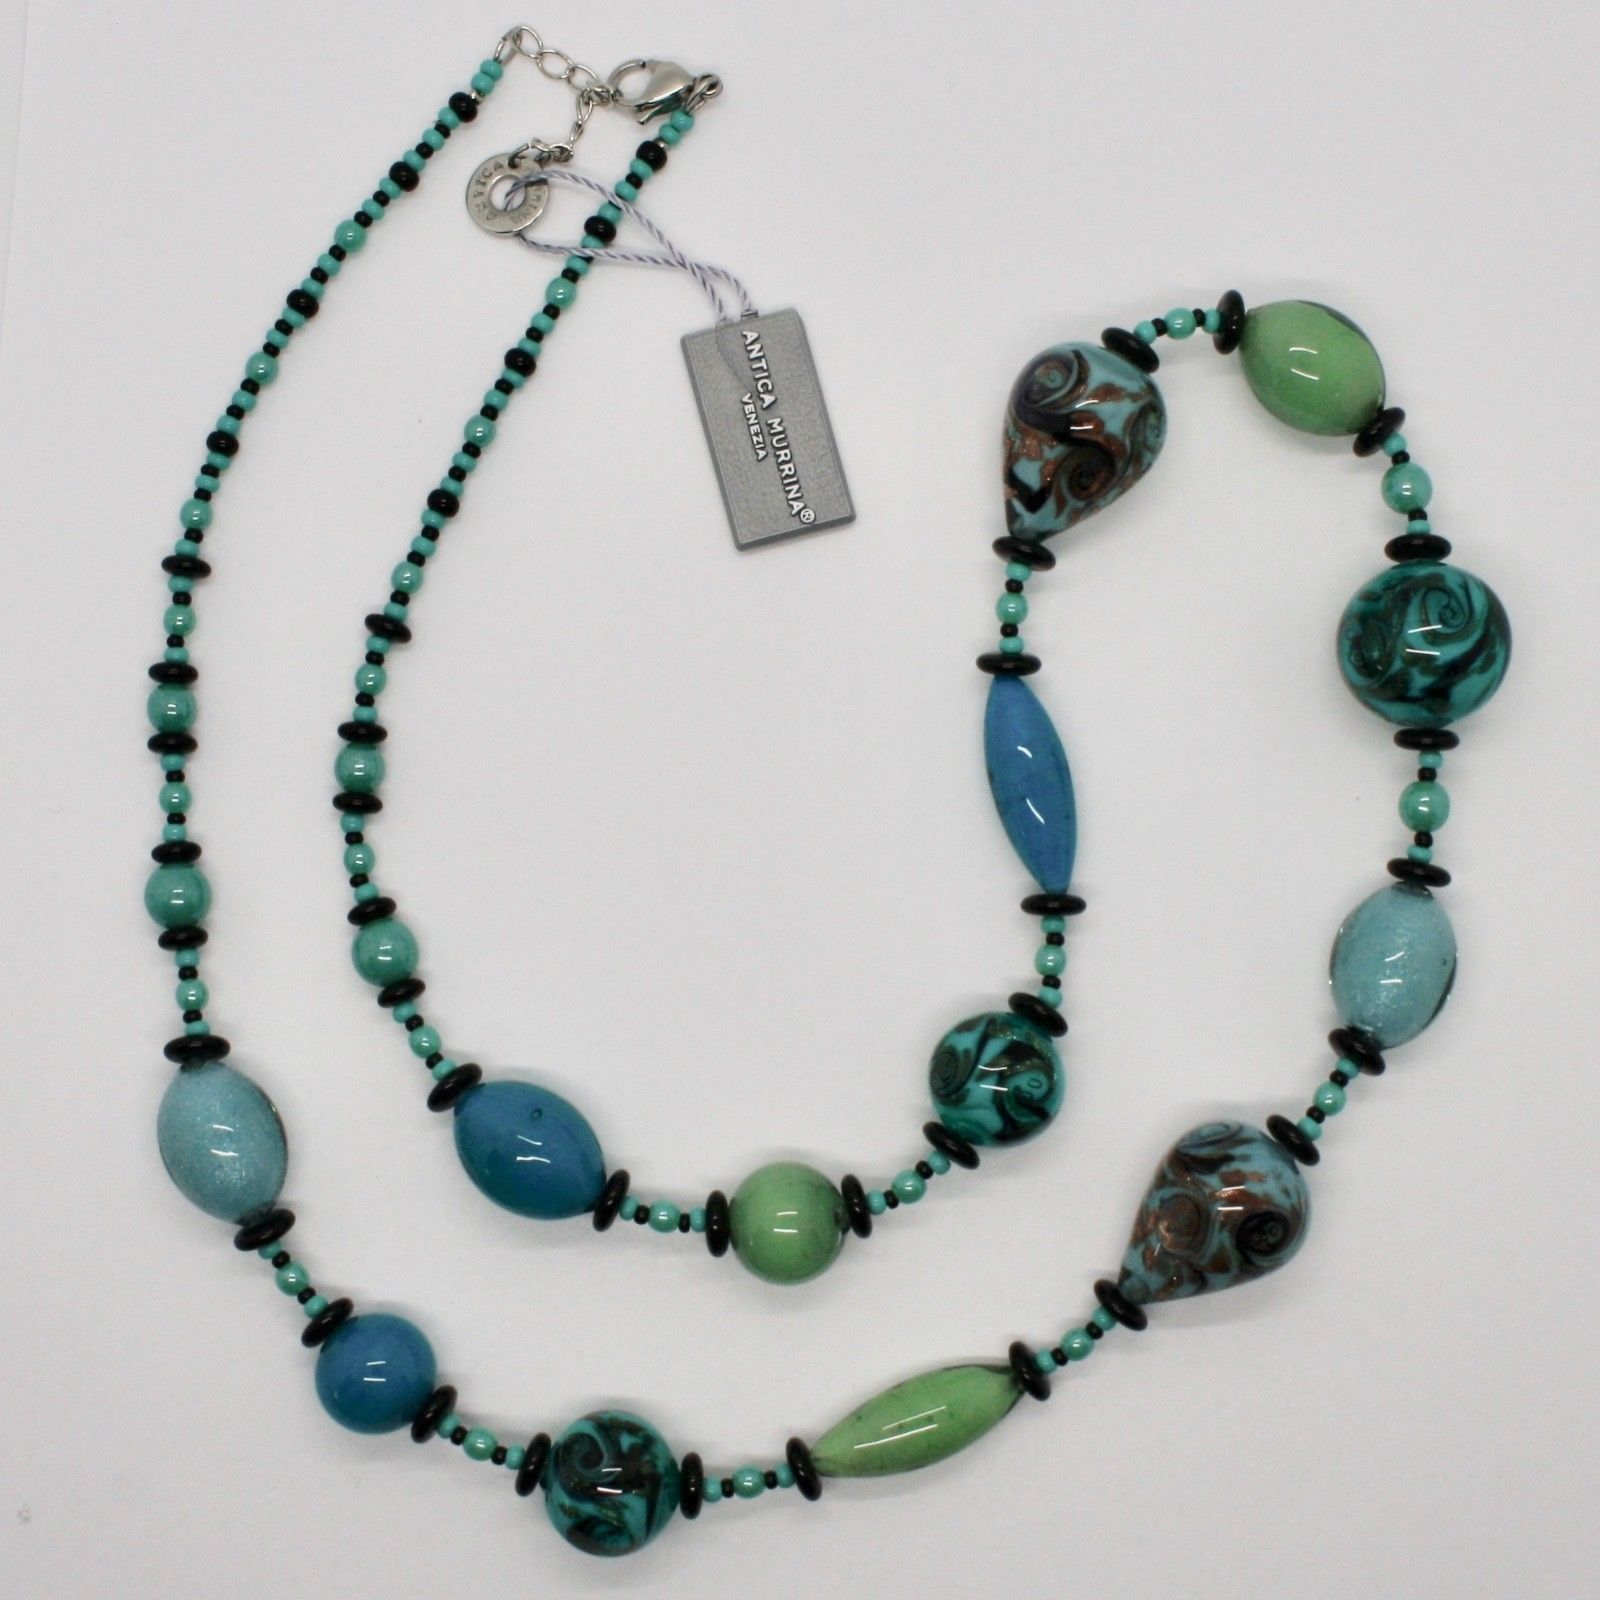 ANTICA MURRINA VENEZIA NECKLACE WITH MURANO GLASS GREEN BLACK TURQUOISE COA88A59